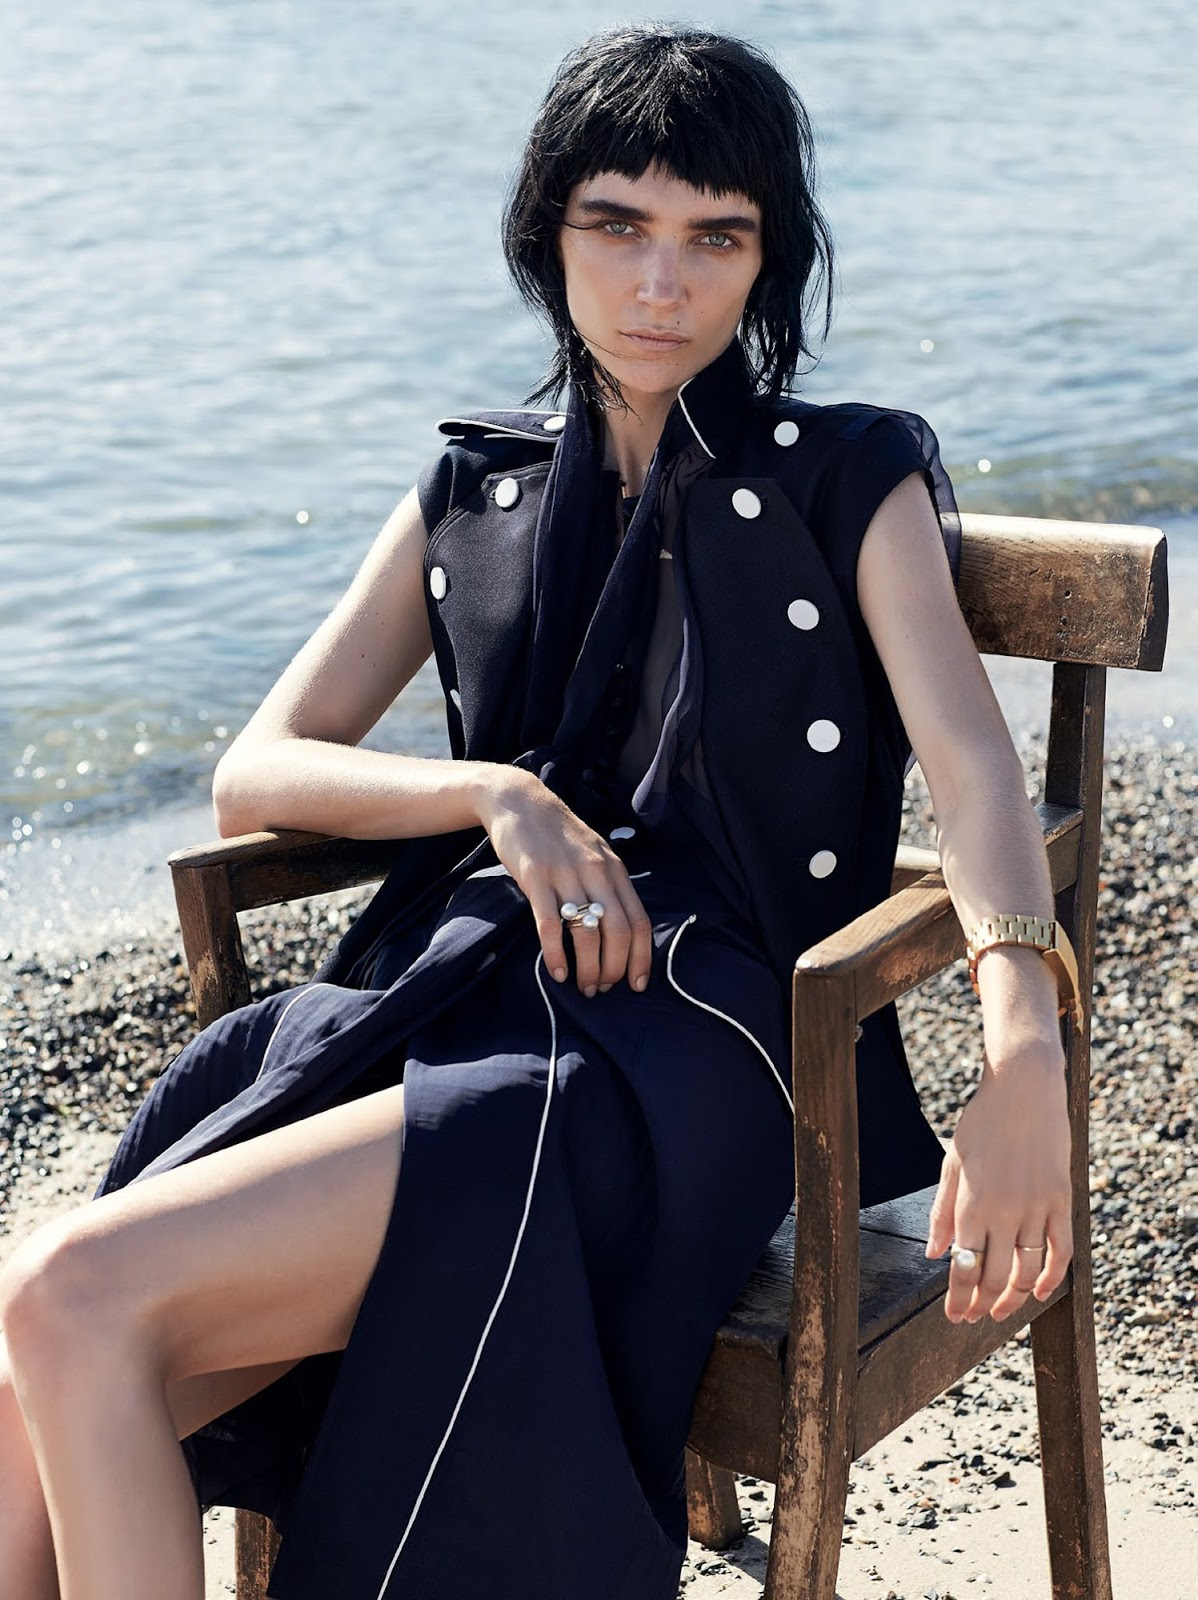 vogue-tales-of-land-and-sea-janice-seinen-10